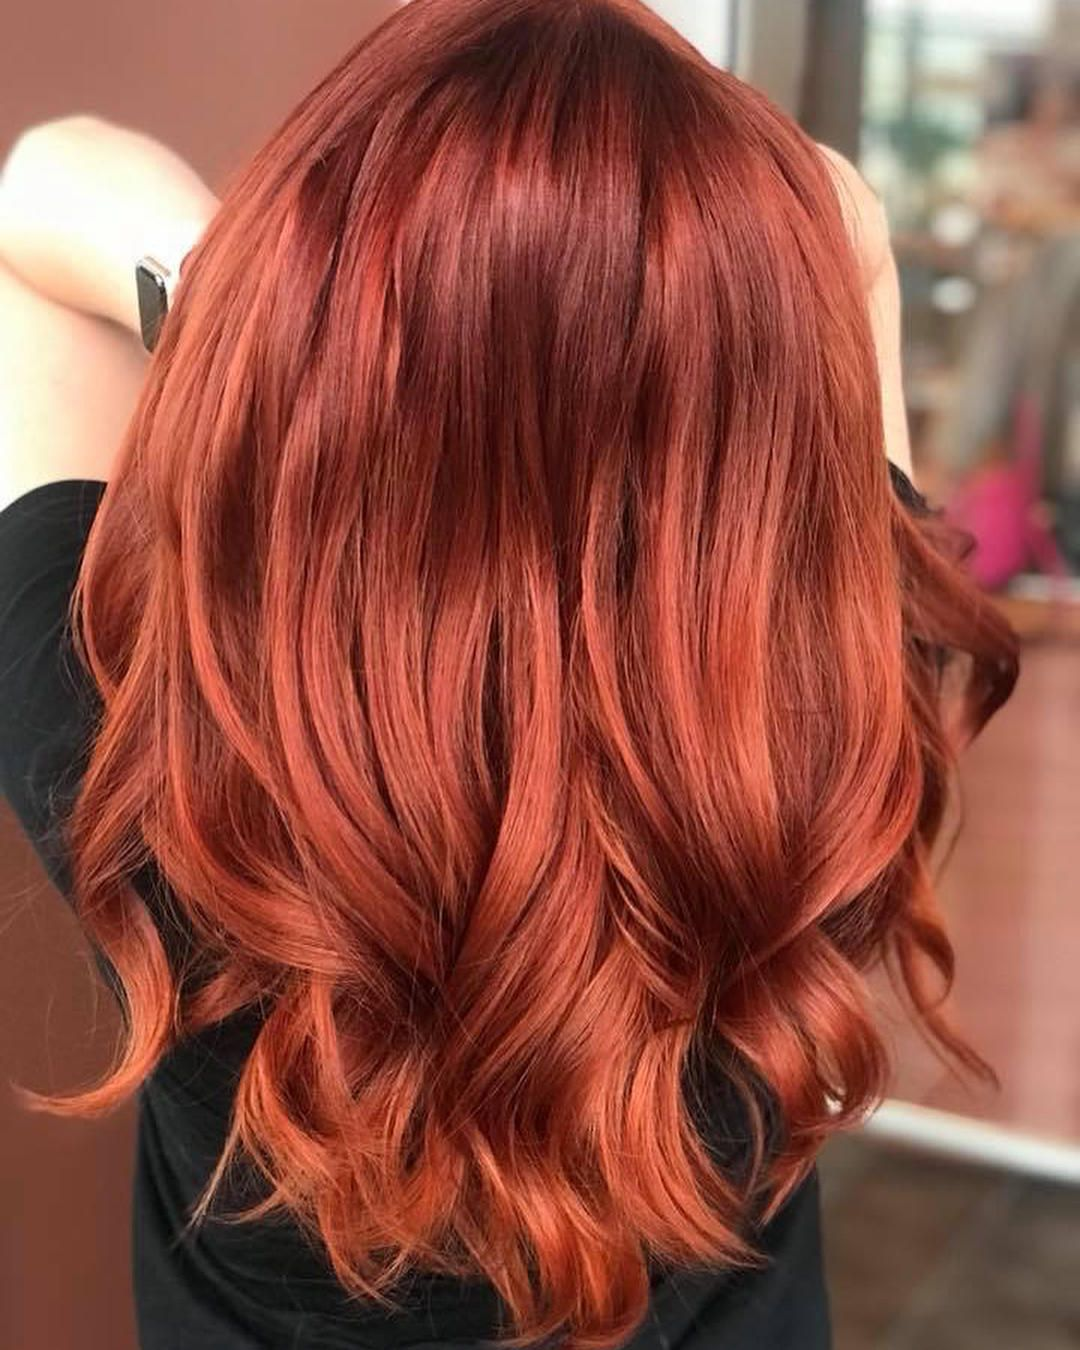 40 Hottest Red Hairstyles And Haircuts For 2021 New Season New Hair New You Hair Styles Short Red Hair Magenta Hair Colors